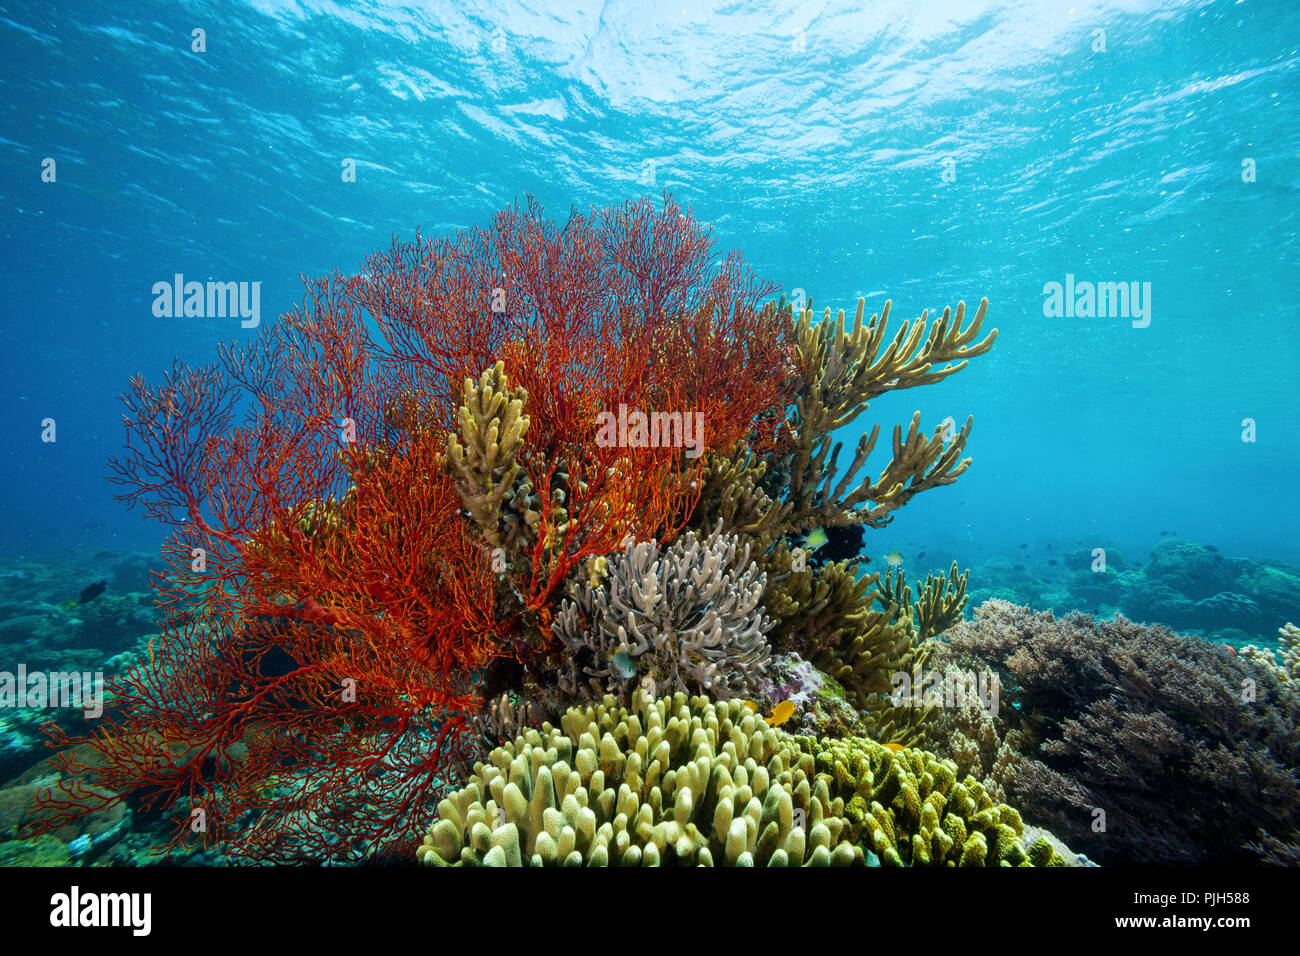 Profusion of hard and soft corals and red sea fan underwater on Mengiatan Island, Komodo National Park, Flores Sea, Indonesia - Stock Image